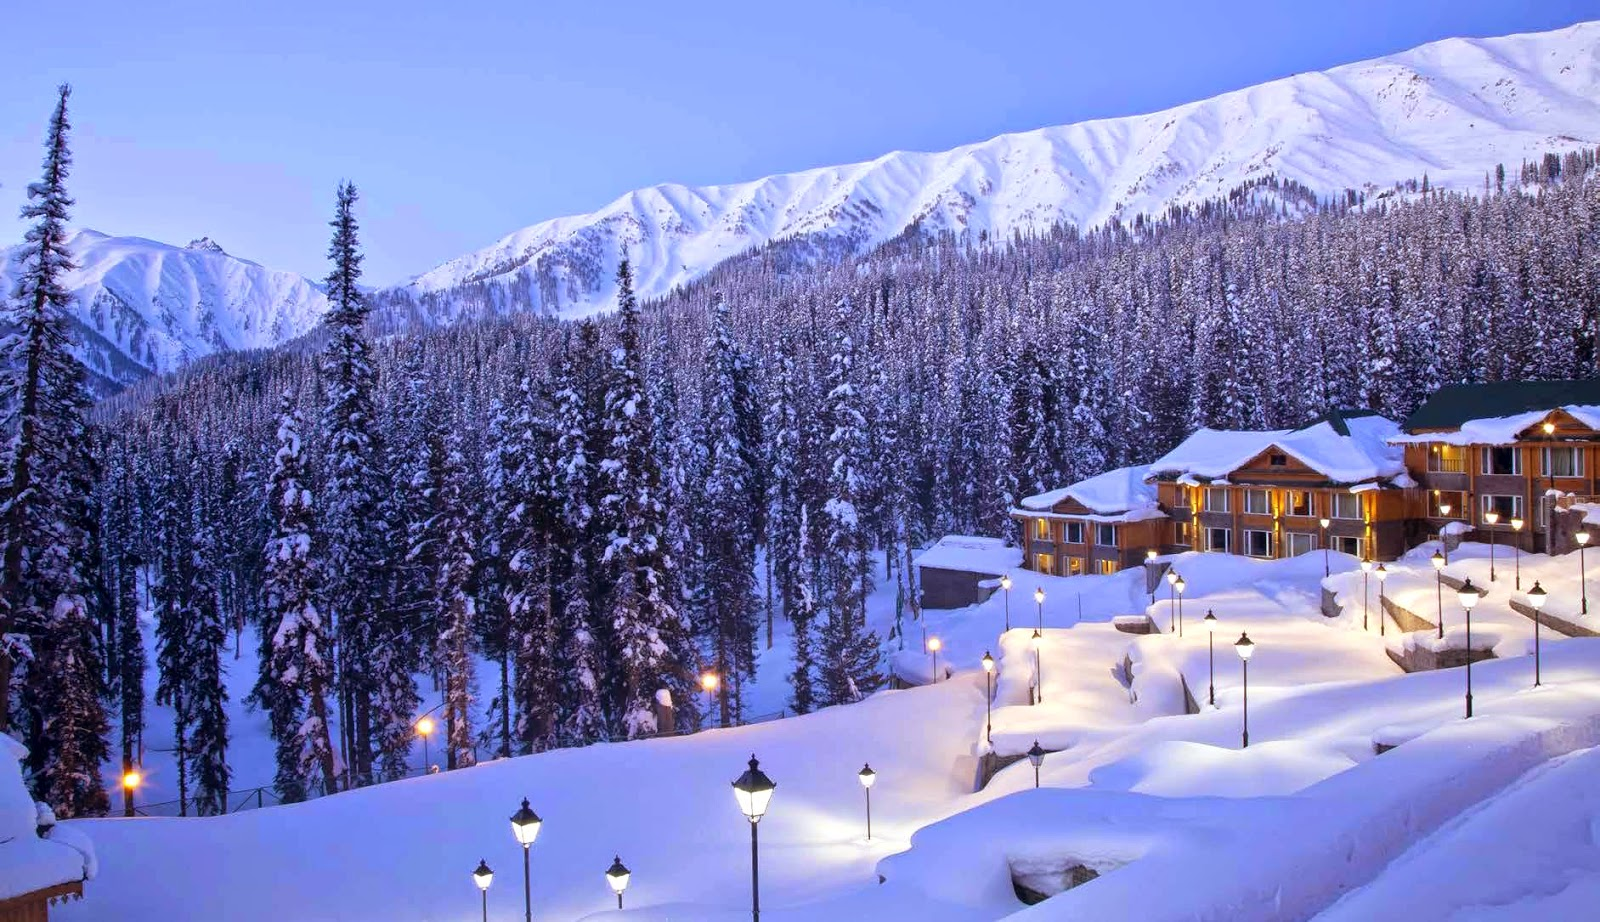 winter in kashmir Write an essay on winter in kashmir - quick and reliable services from industry  top agency confide your dissertation to experienced writers.